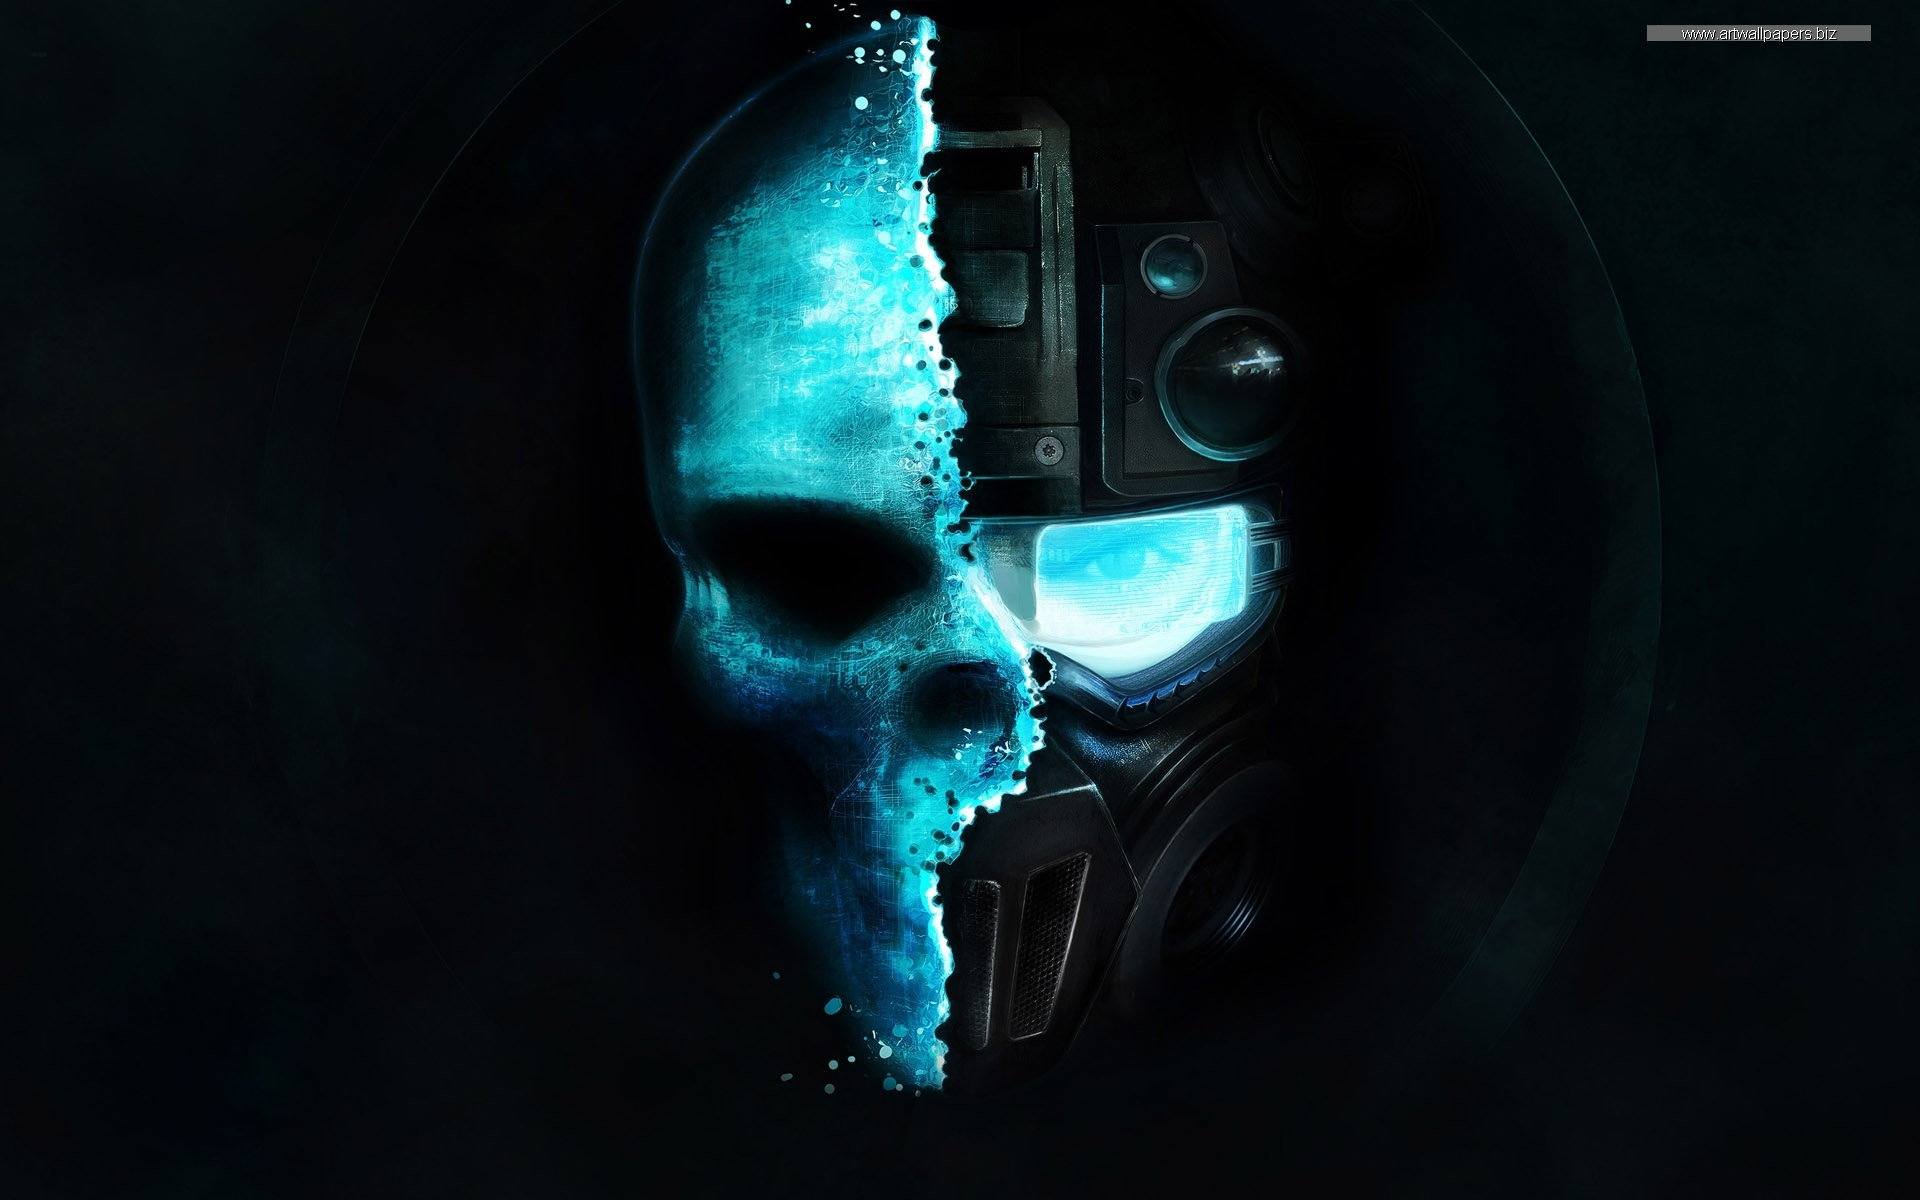 Hd Game Wallpapers 1080p Widescreen 1920x1200